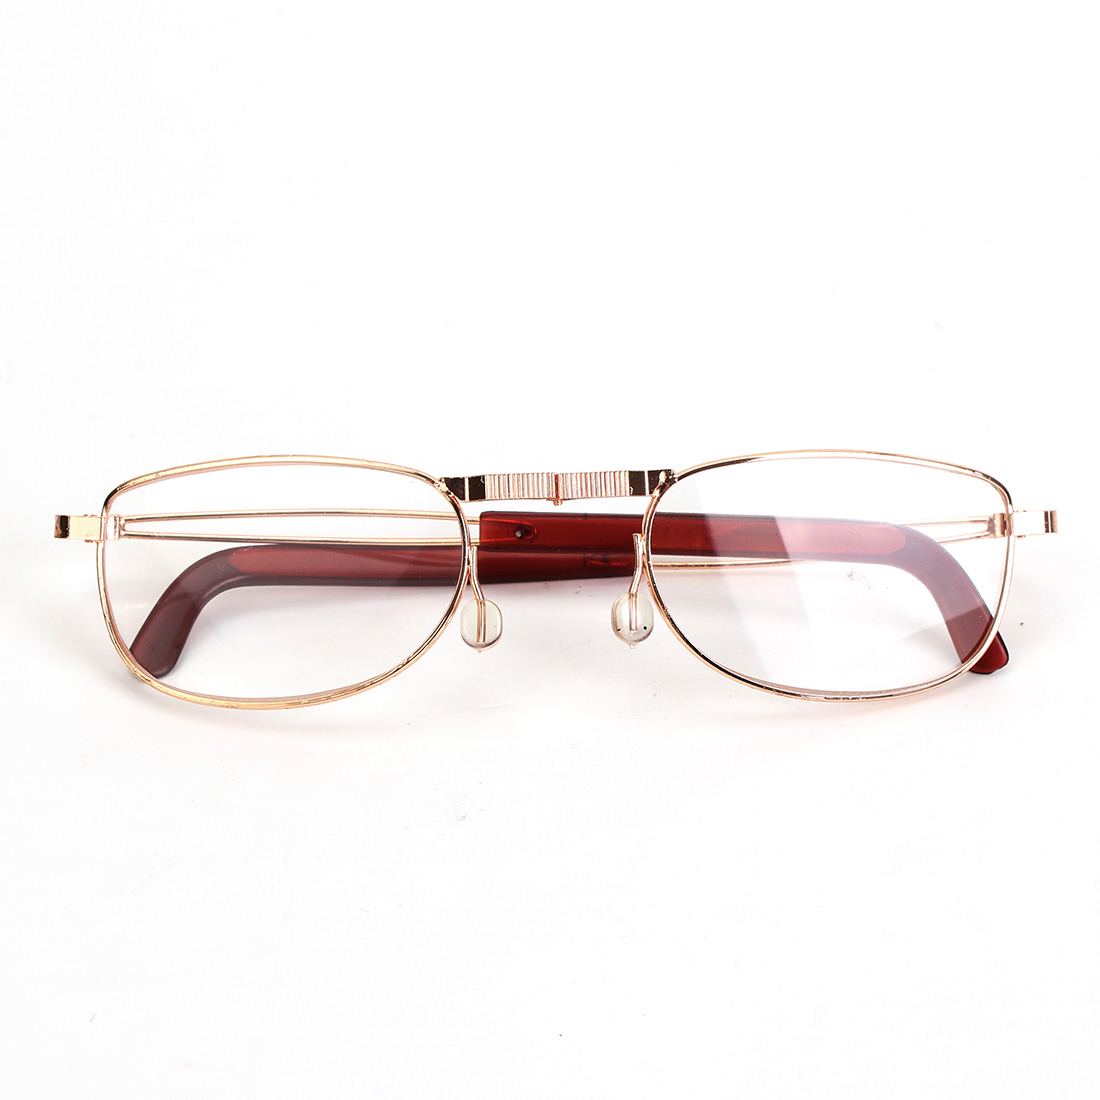 Antique Folding Reading Glasses